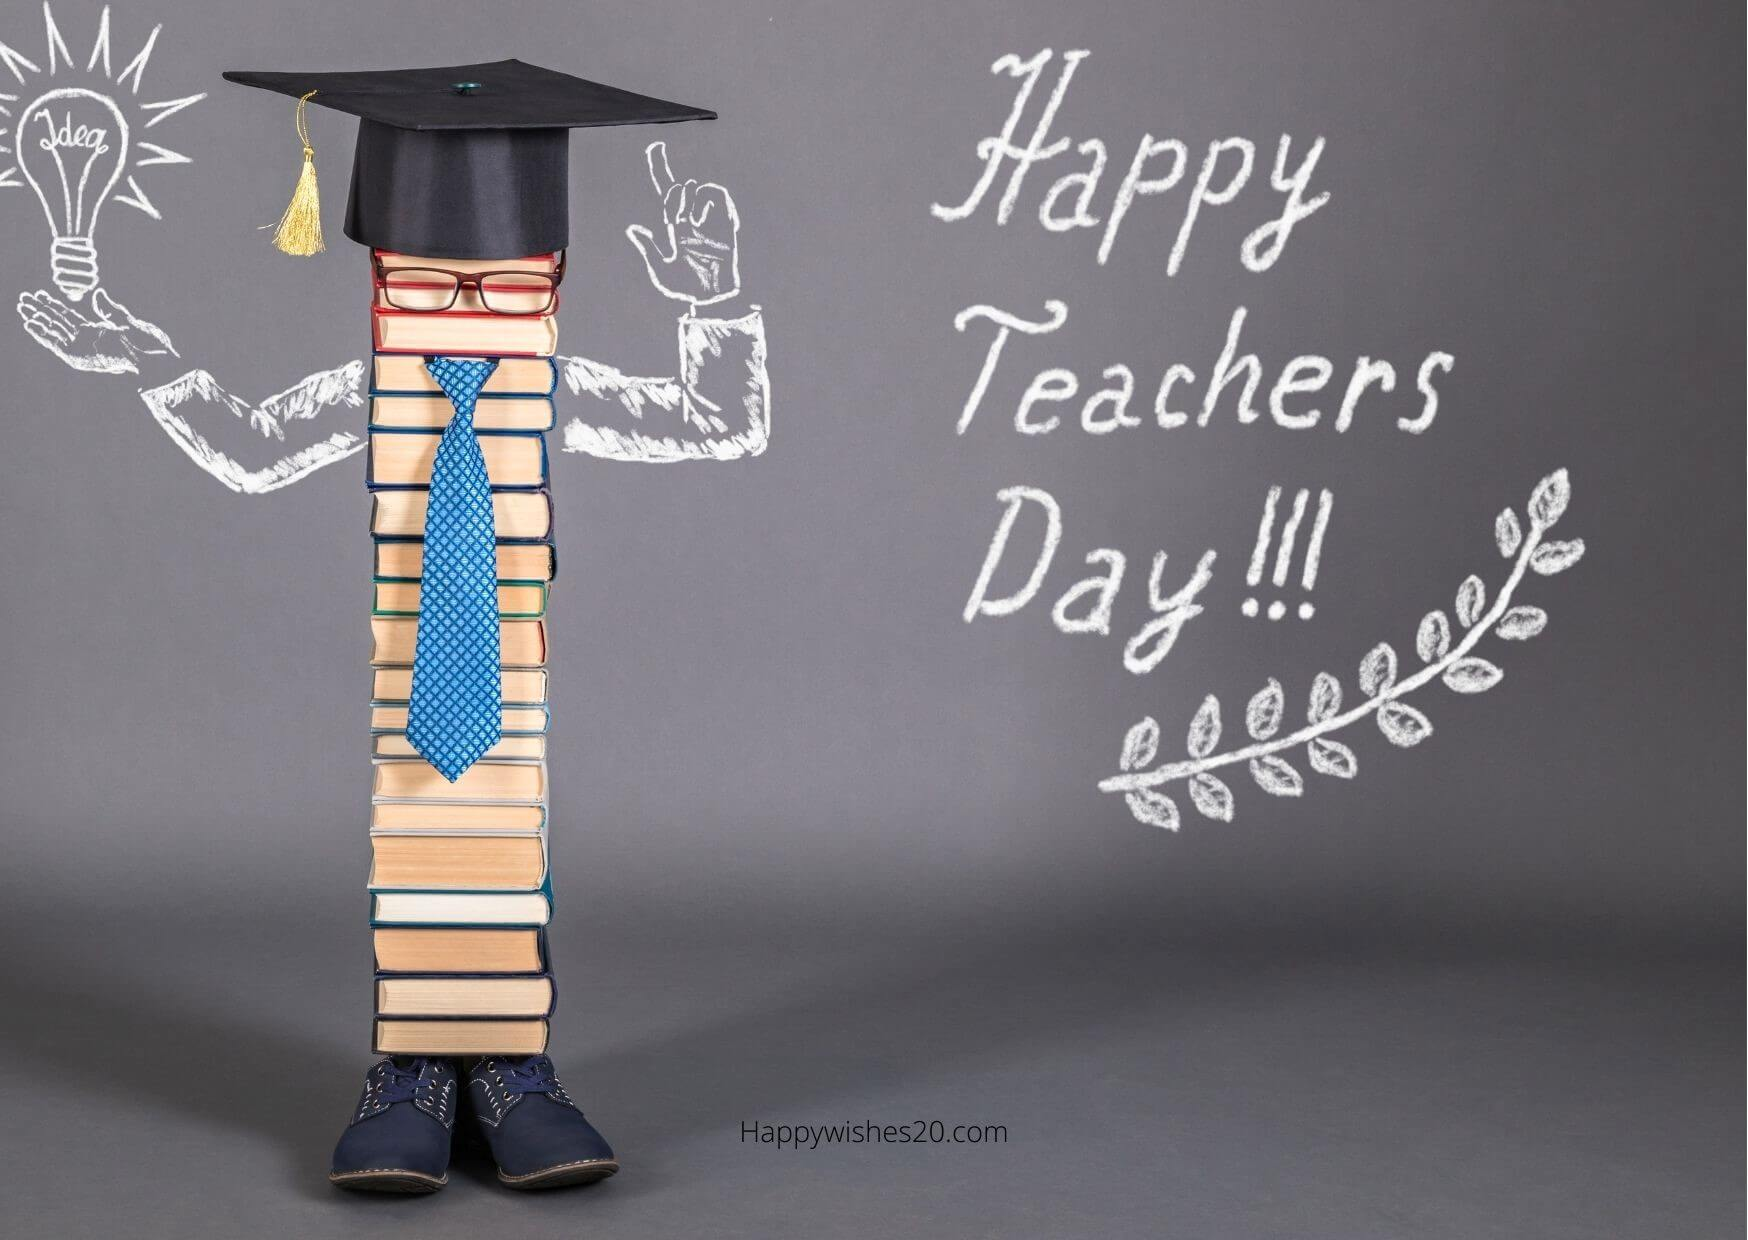 Happy Teachers Day 2021 Wishes Quotes Images